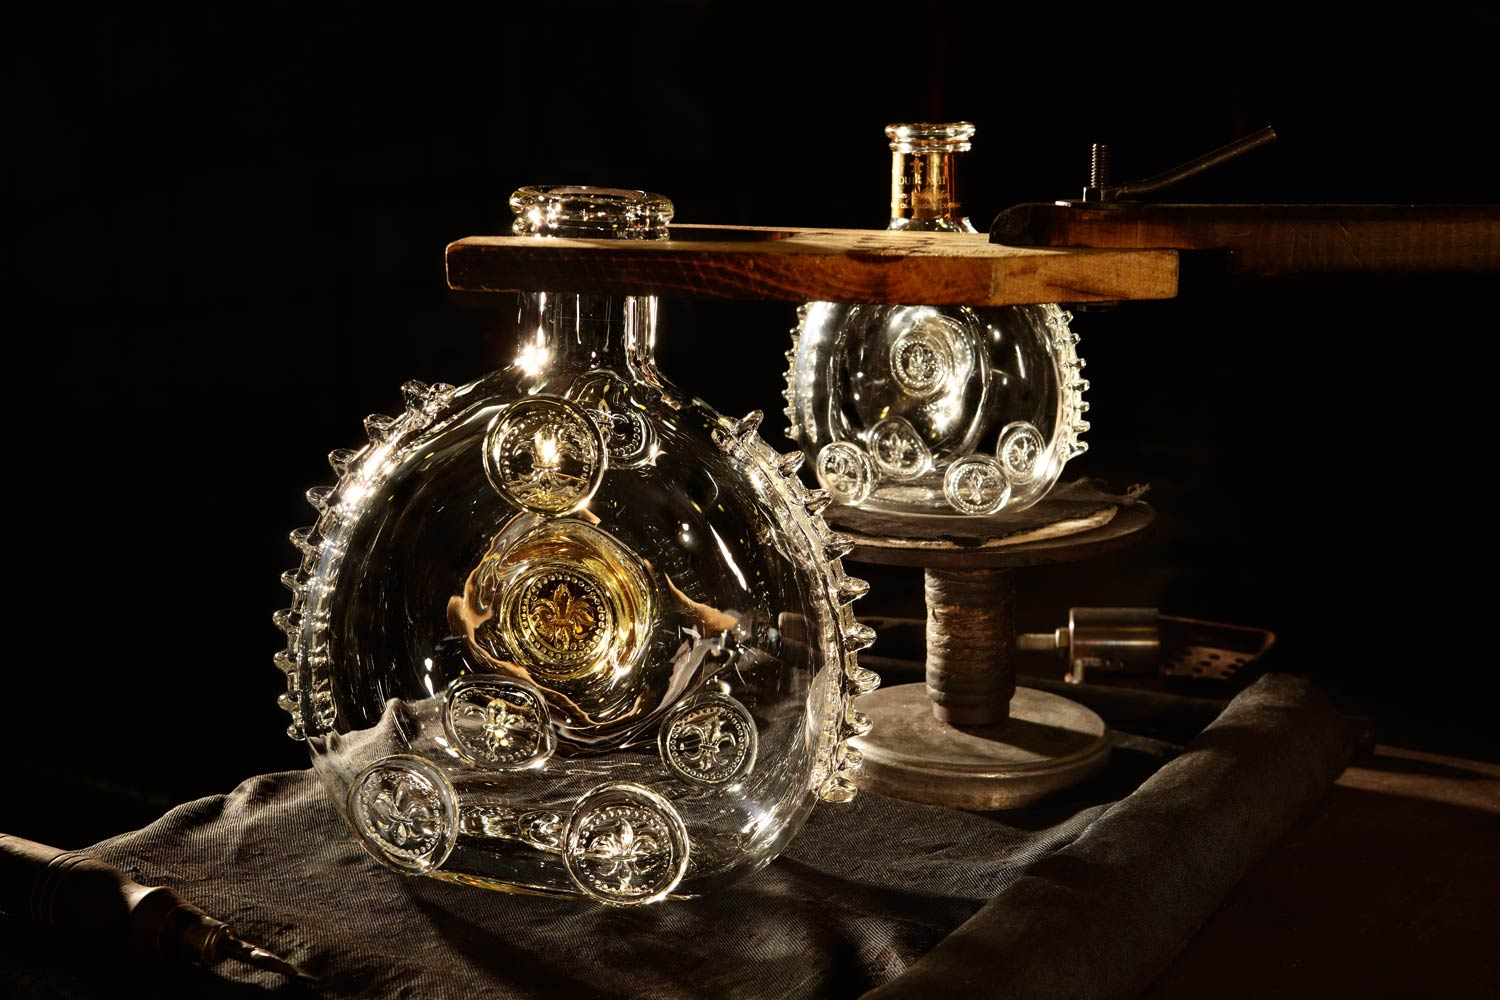 A quest to find the rarest Louis XIII decanter on earth